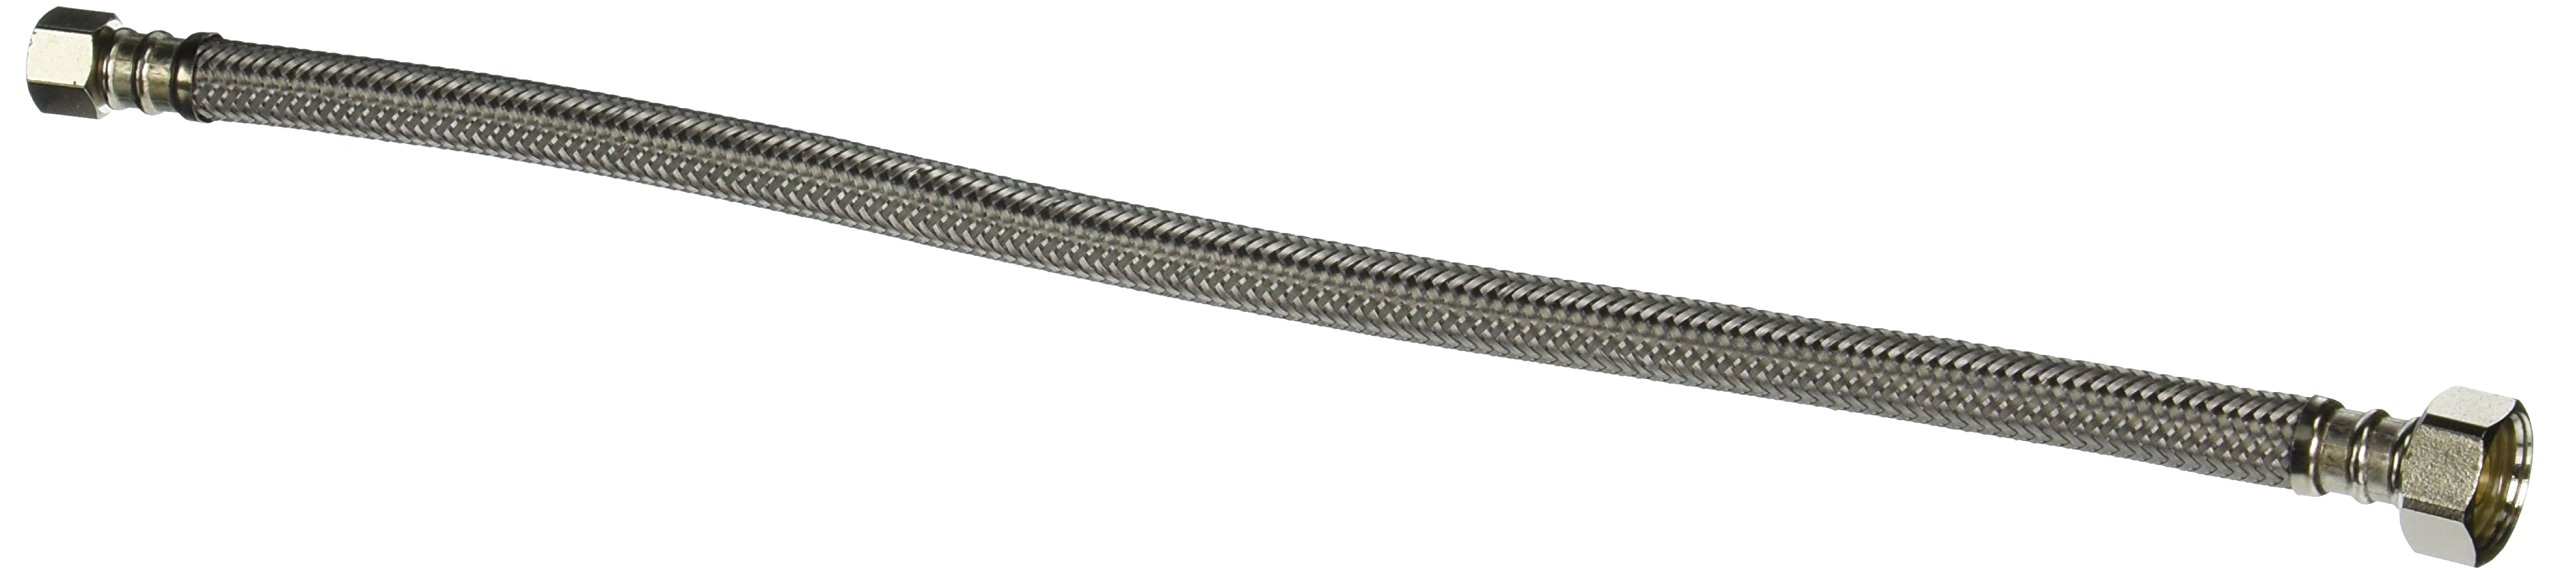 Fluidmaster PRO1F16 Braided Stainless Steel Faucet Supply Line